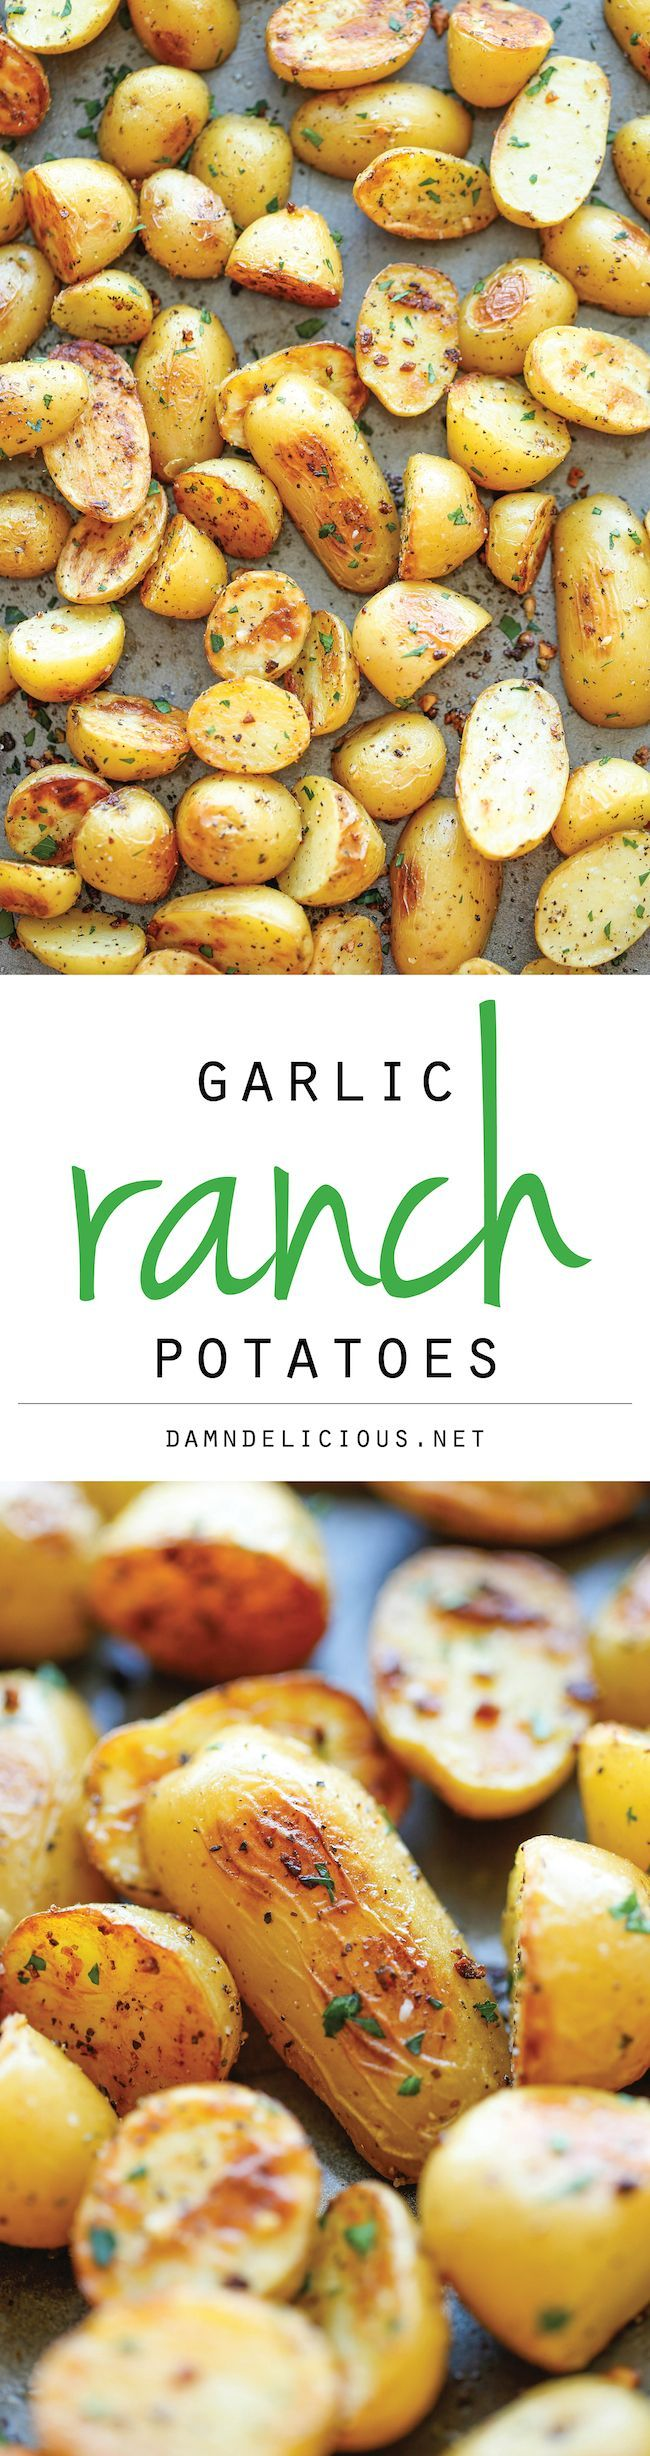 Garlic Ranch Potatoes | The best and easiest way to roast potatoes with garlic and ranch. After this, you'll never want to roast potatoes any other way!